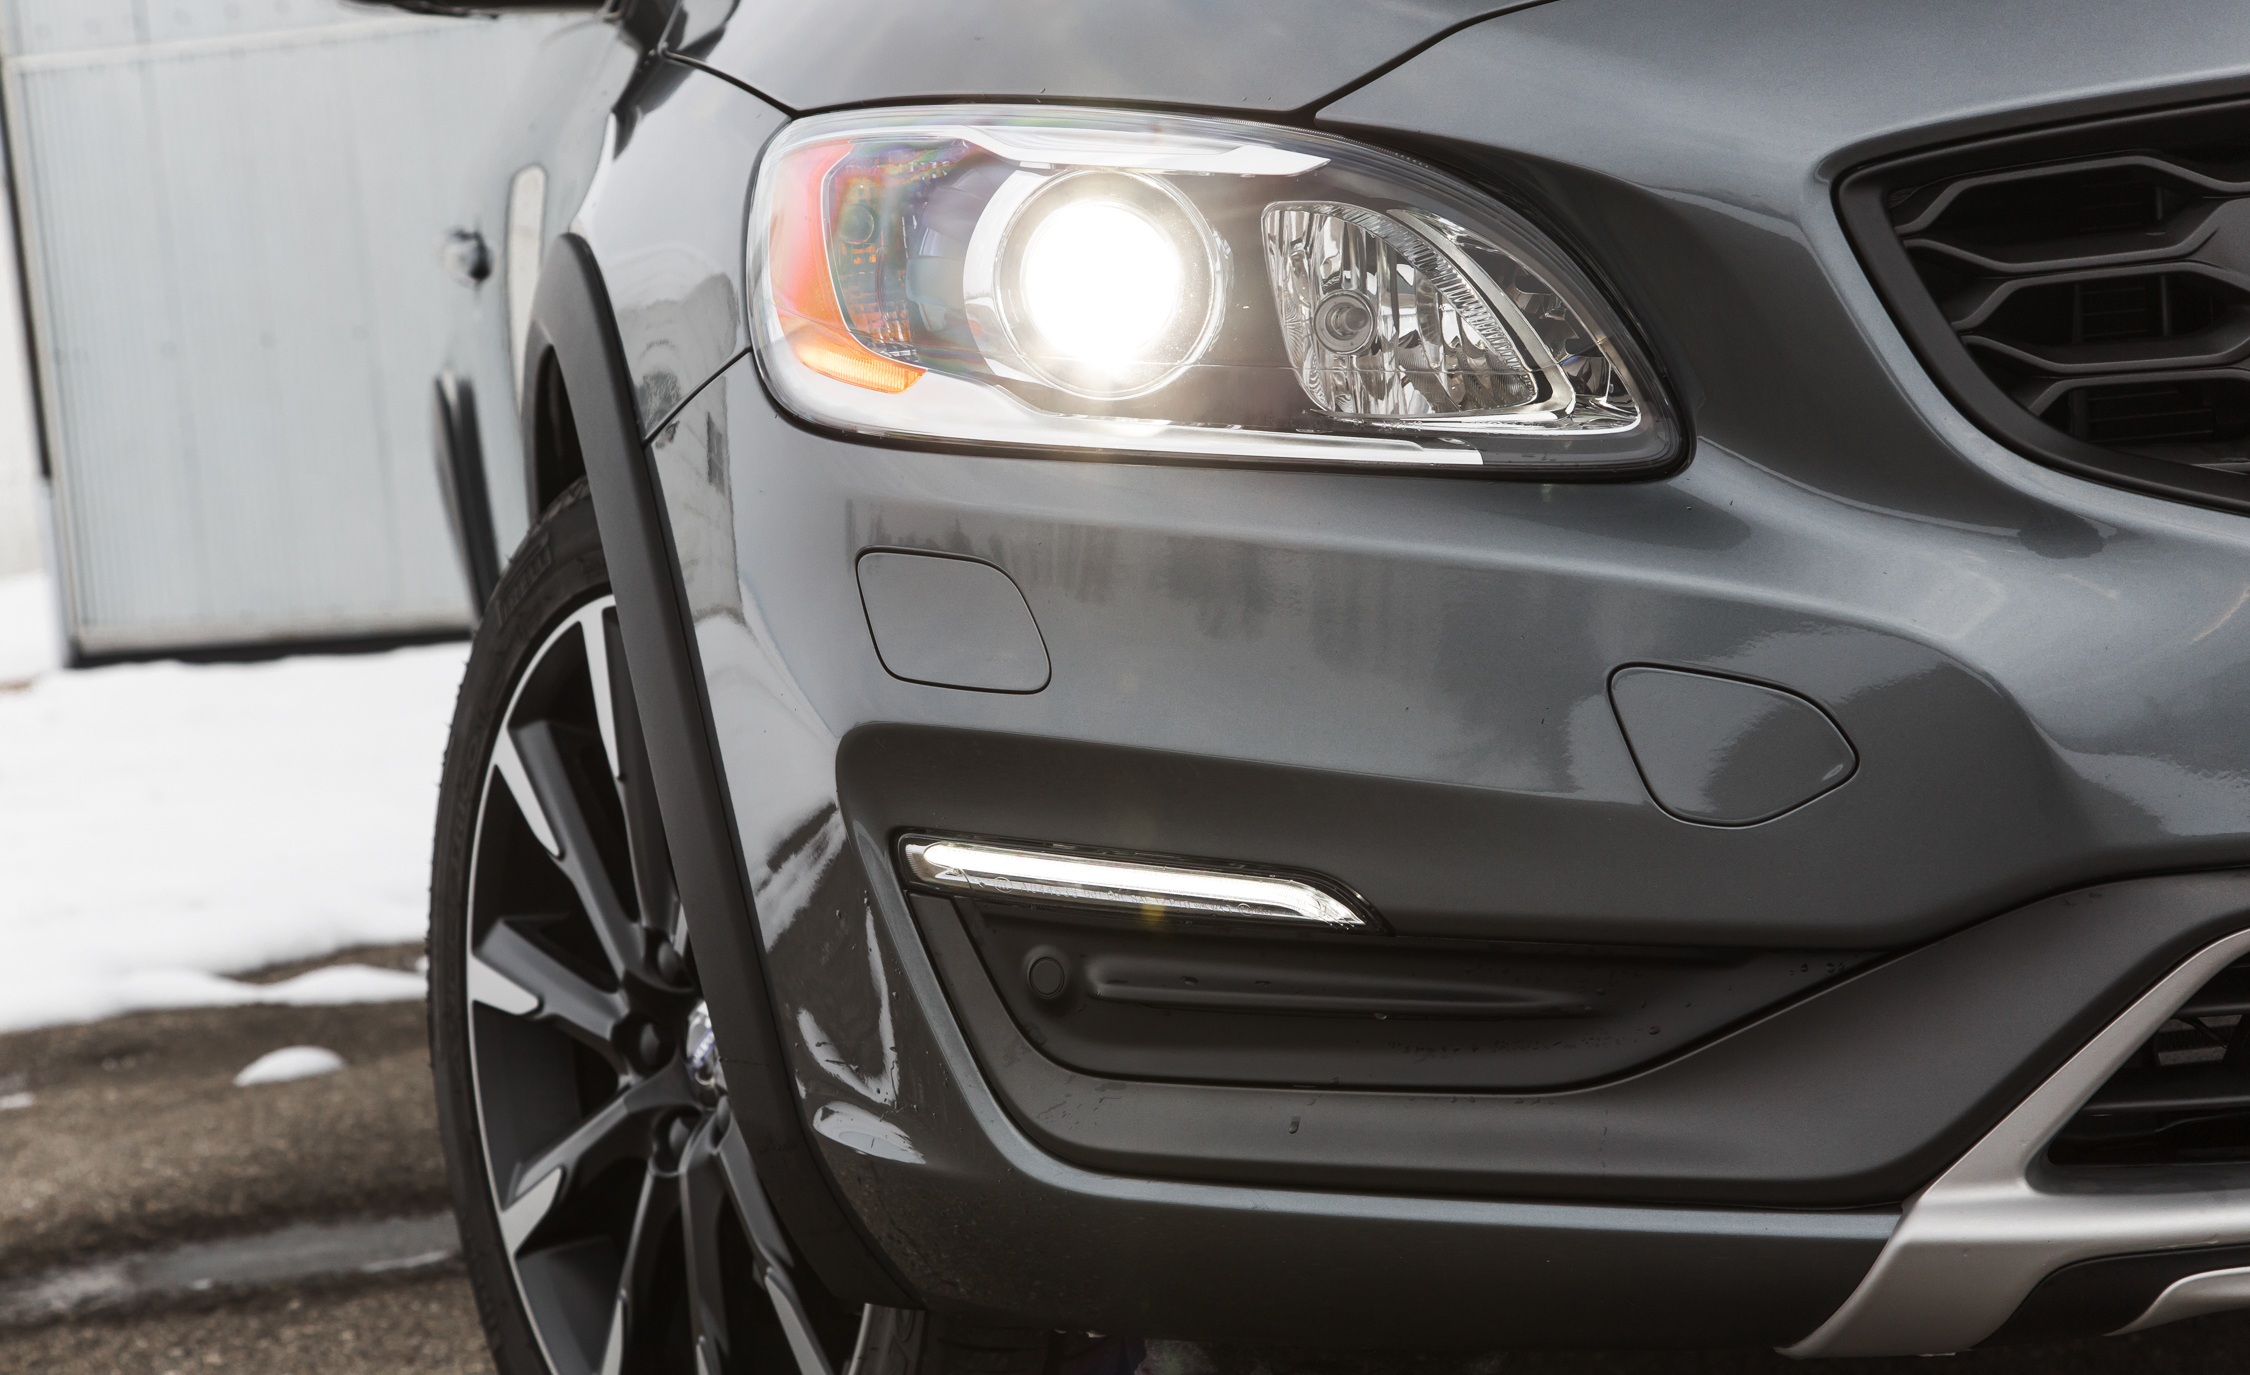 2016 Volvo S60 Cross Country Exterior Headlight (Photo 8 of 21)